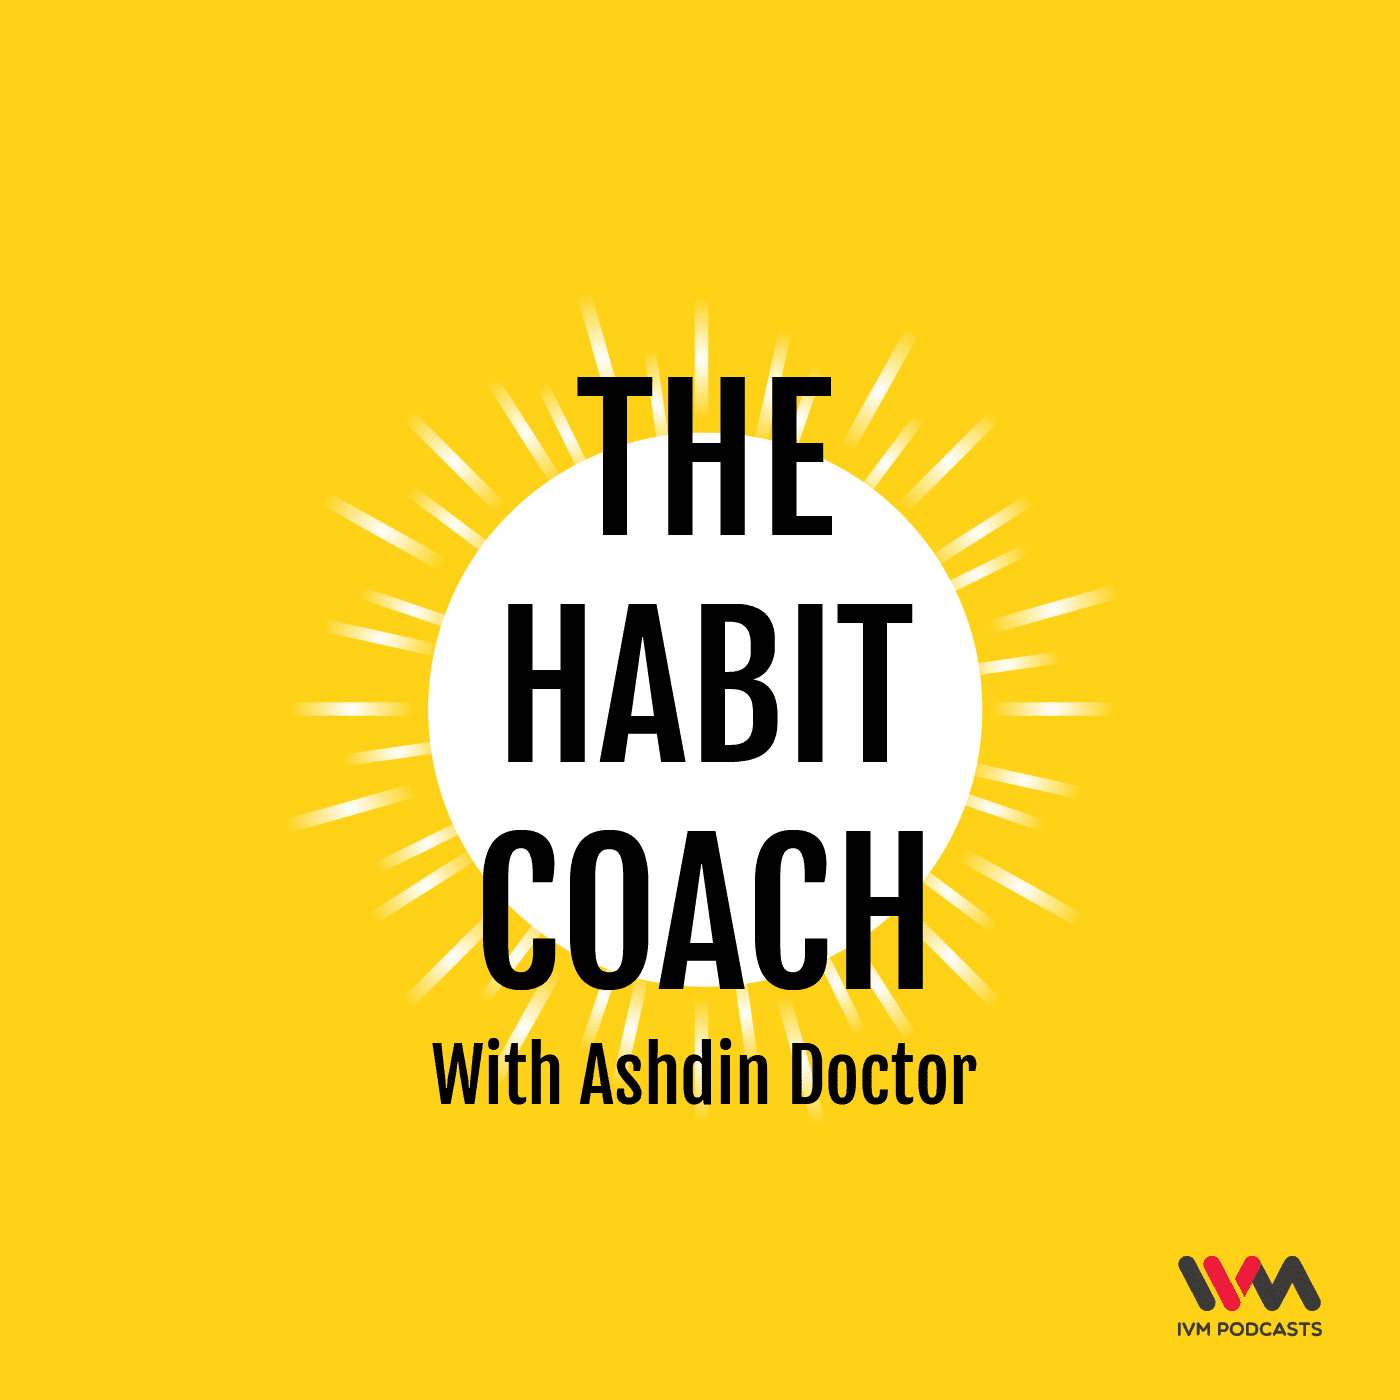 The Habit Coach with Ashdin Doctor podcast cover